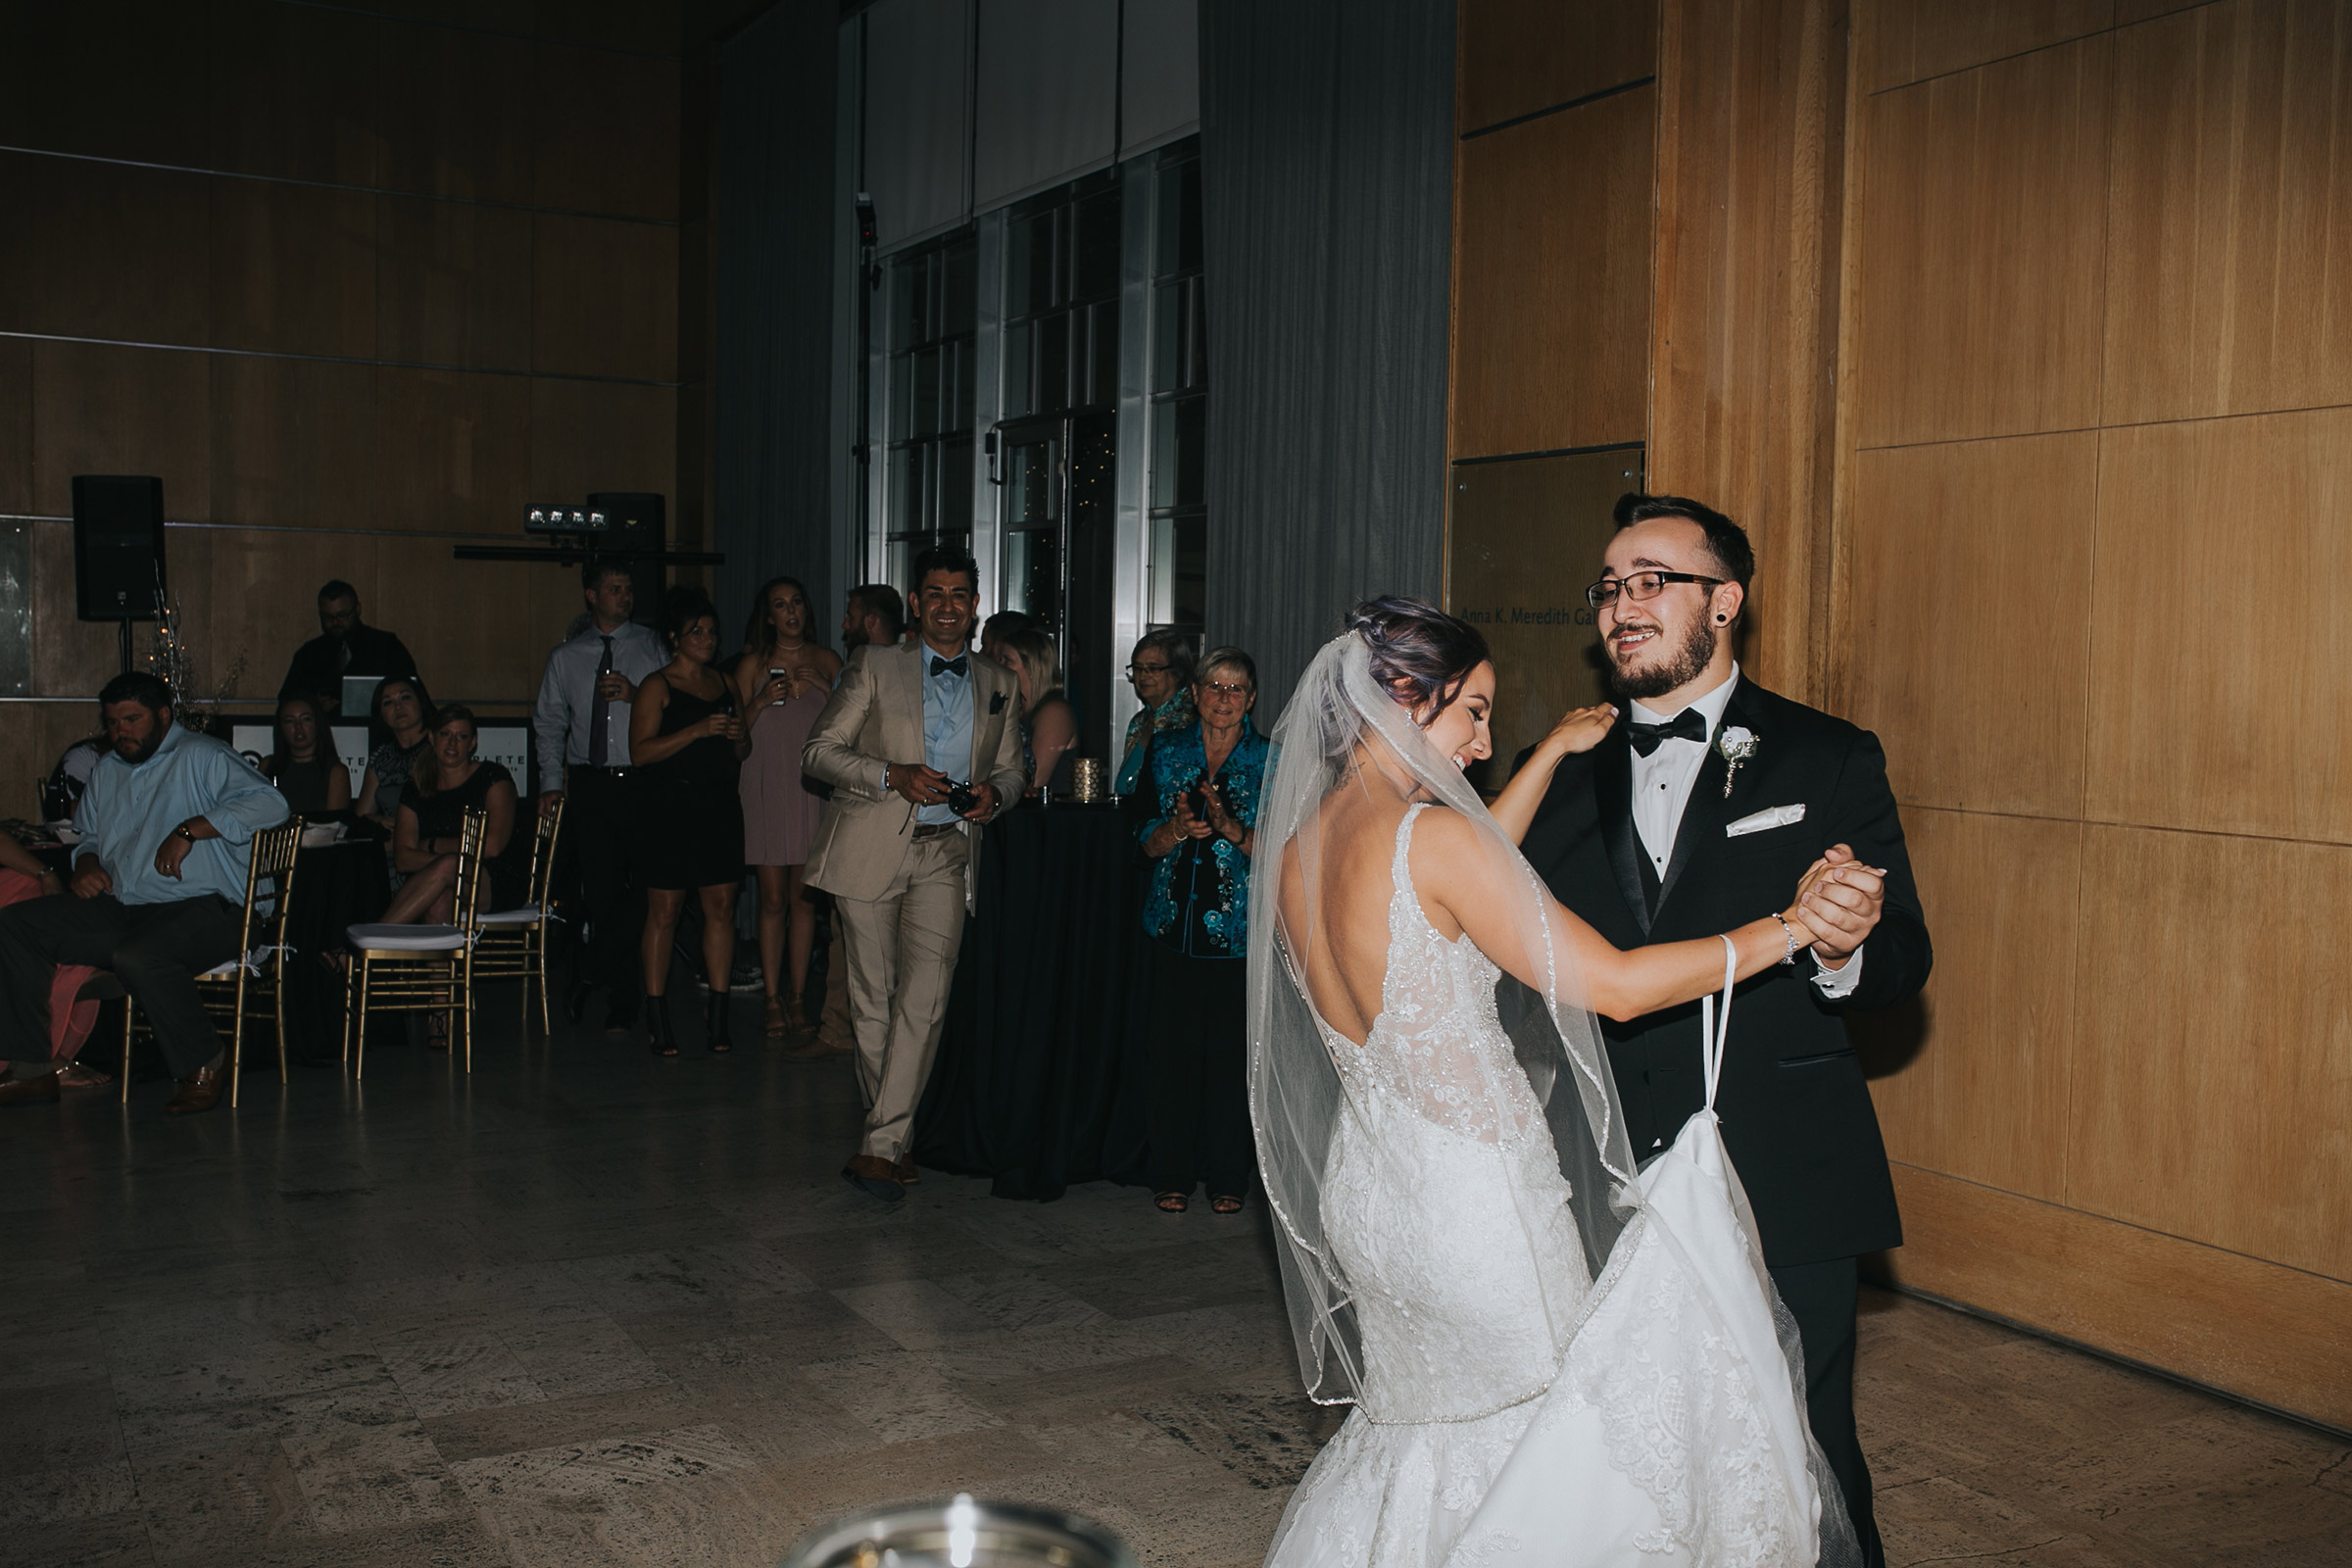 bride-dancing-with-brother-desmoines-iowa-art-center-raelyn-ramey-photography.jpg